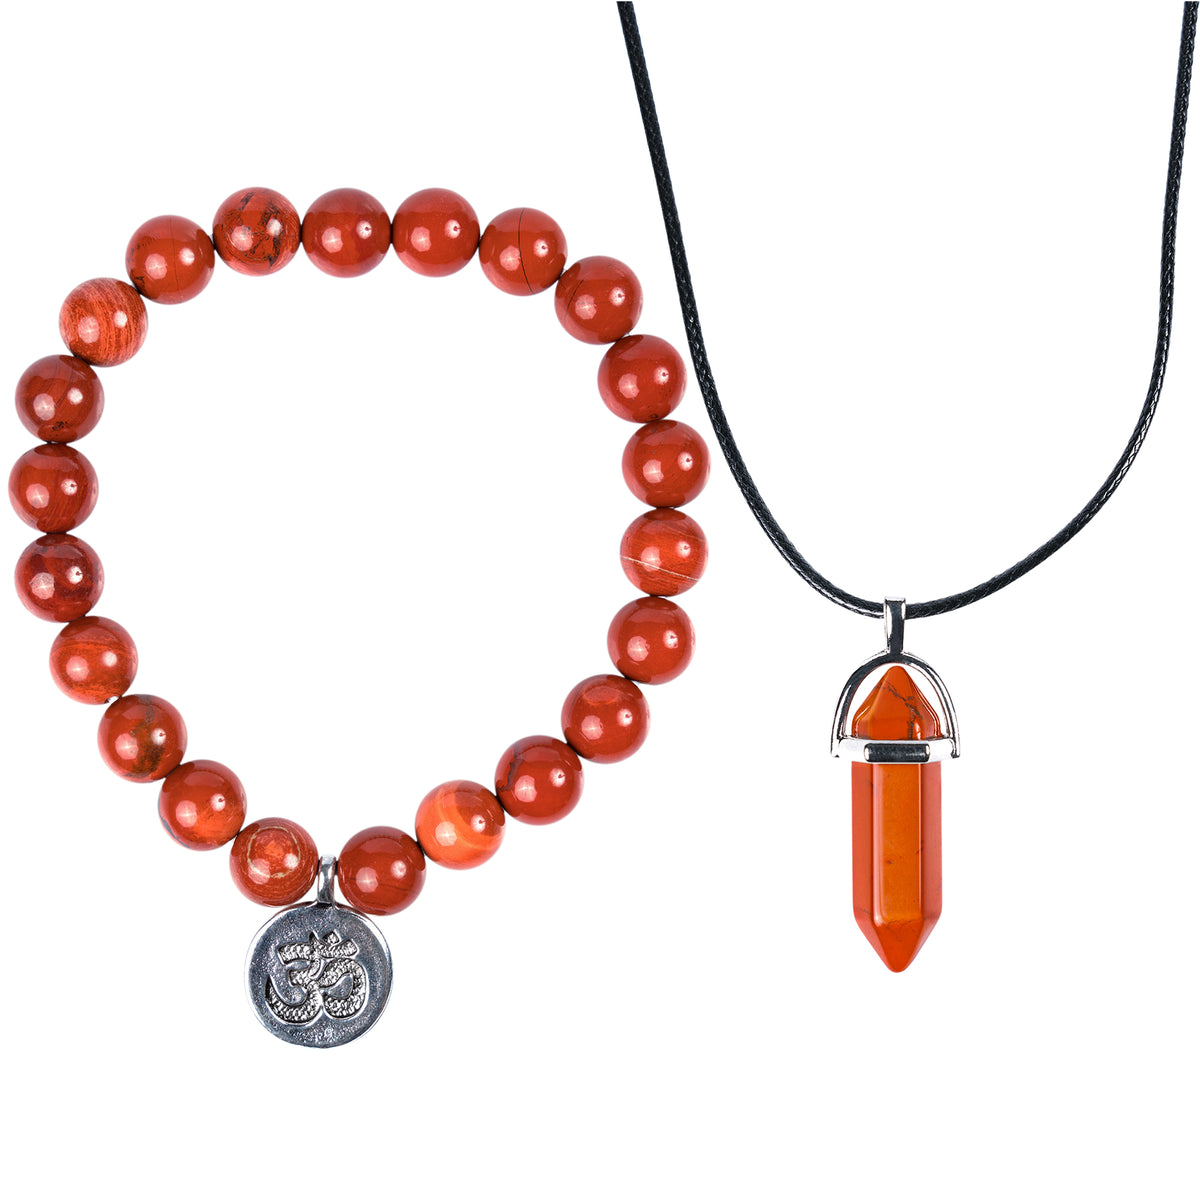 Anti-stress Red Jasper Bracelet and Necklace Set